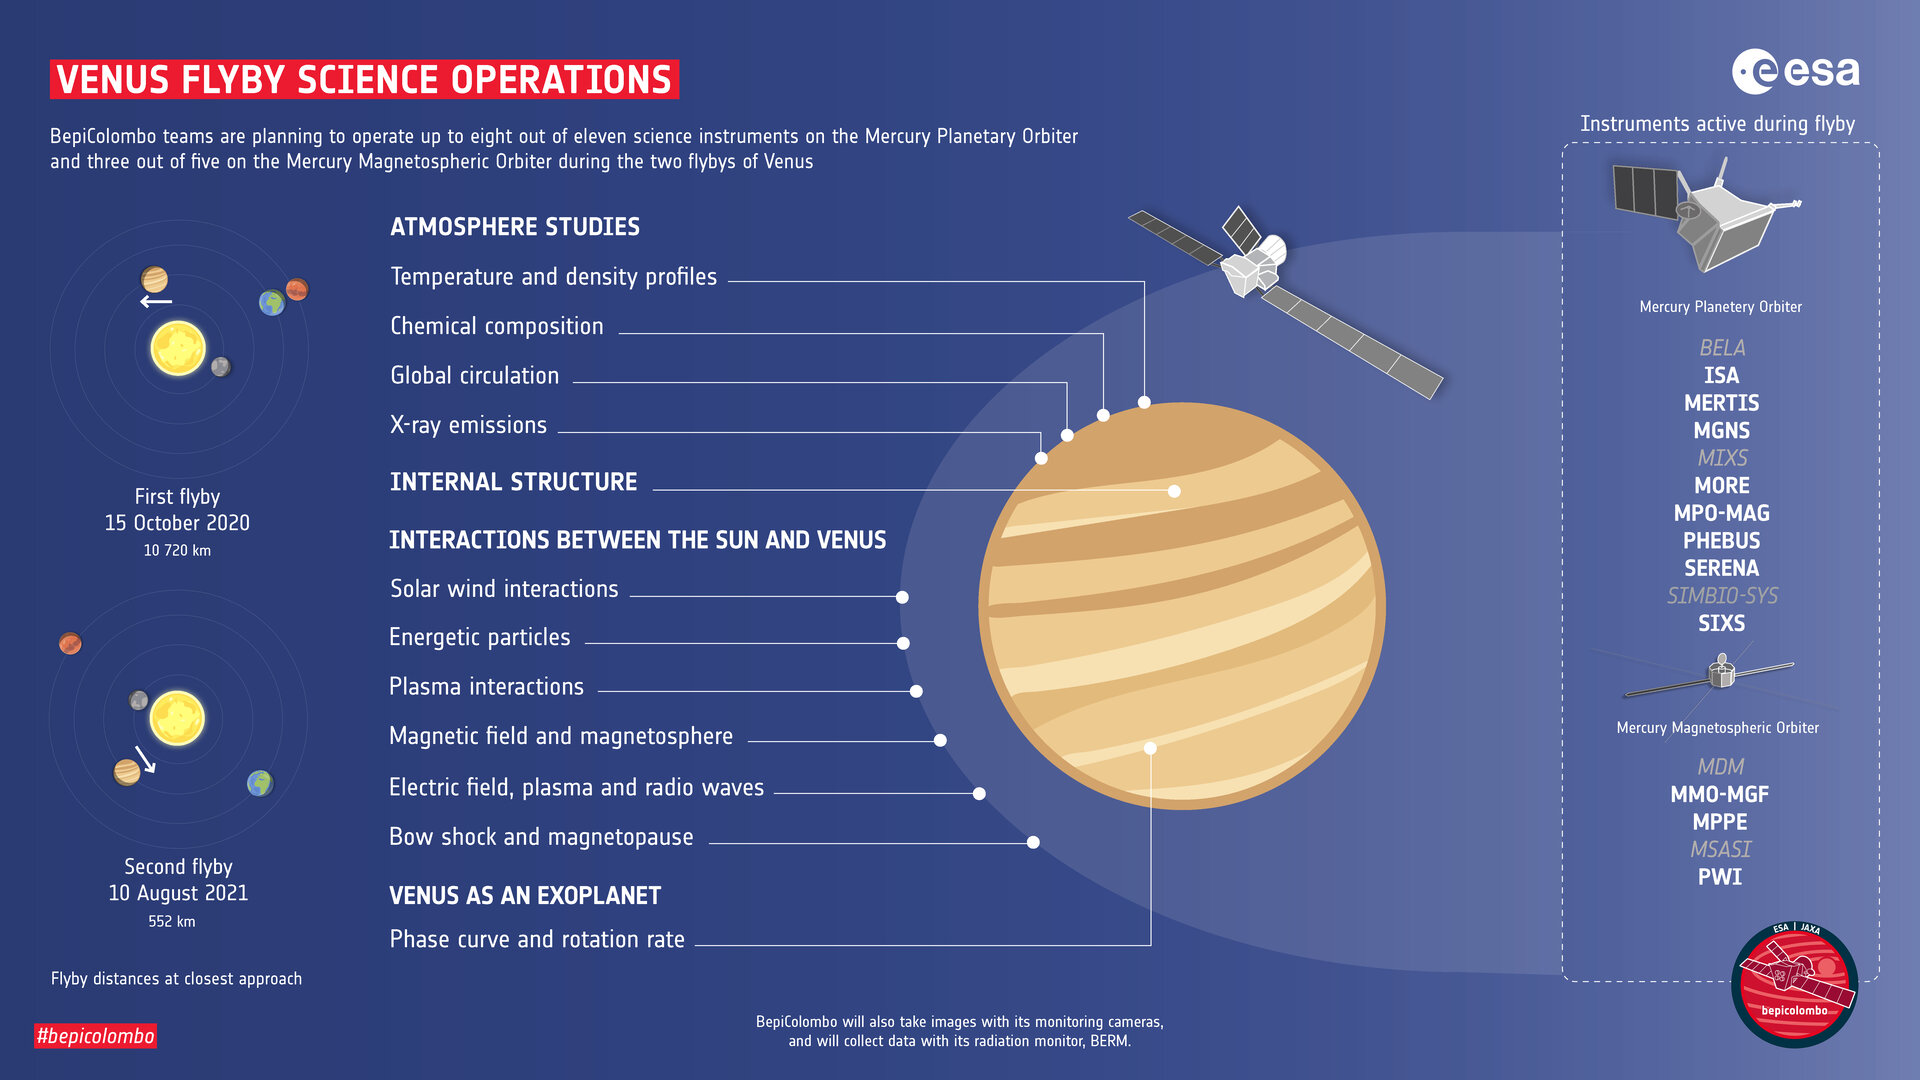 Venus flyby science operations